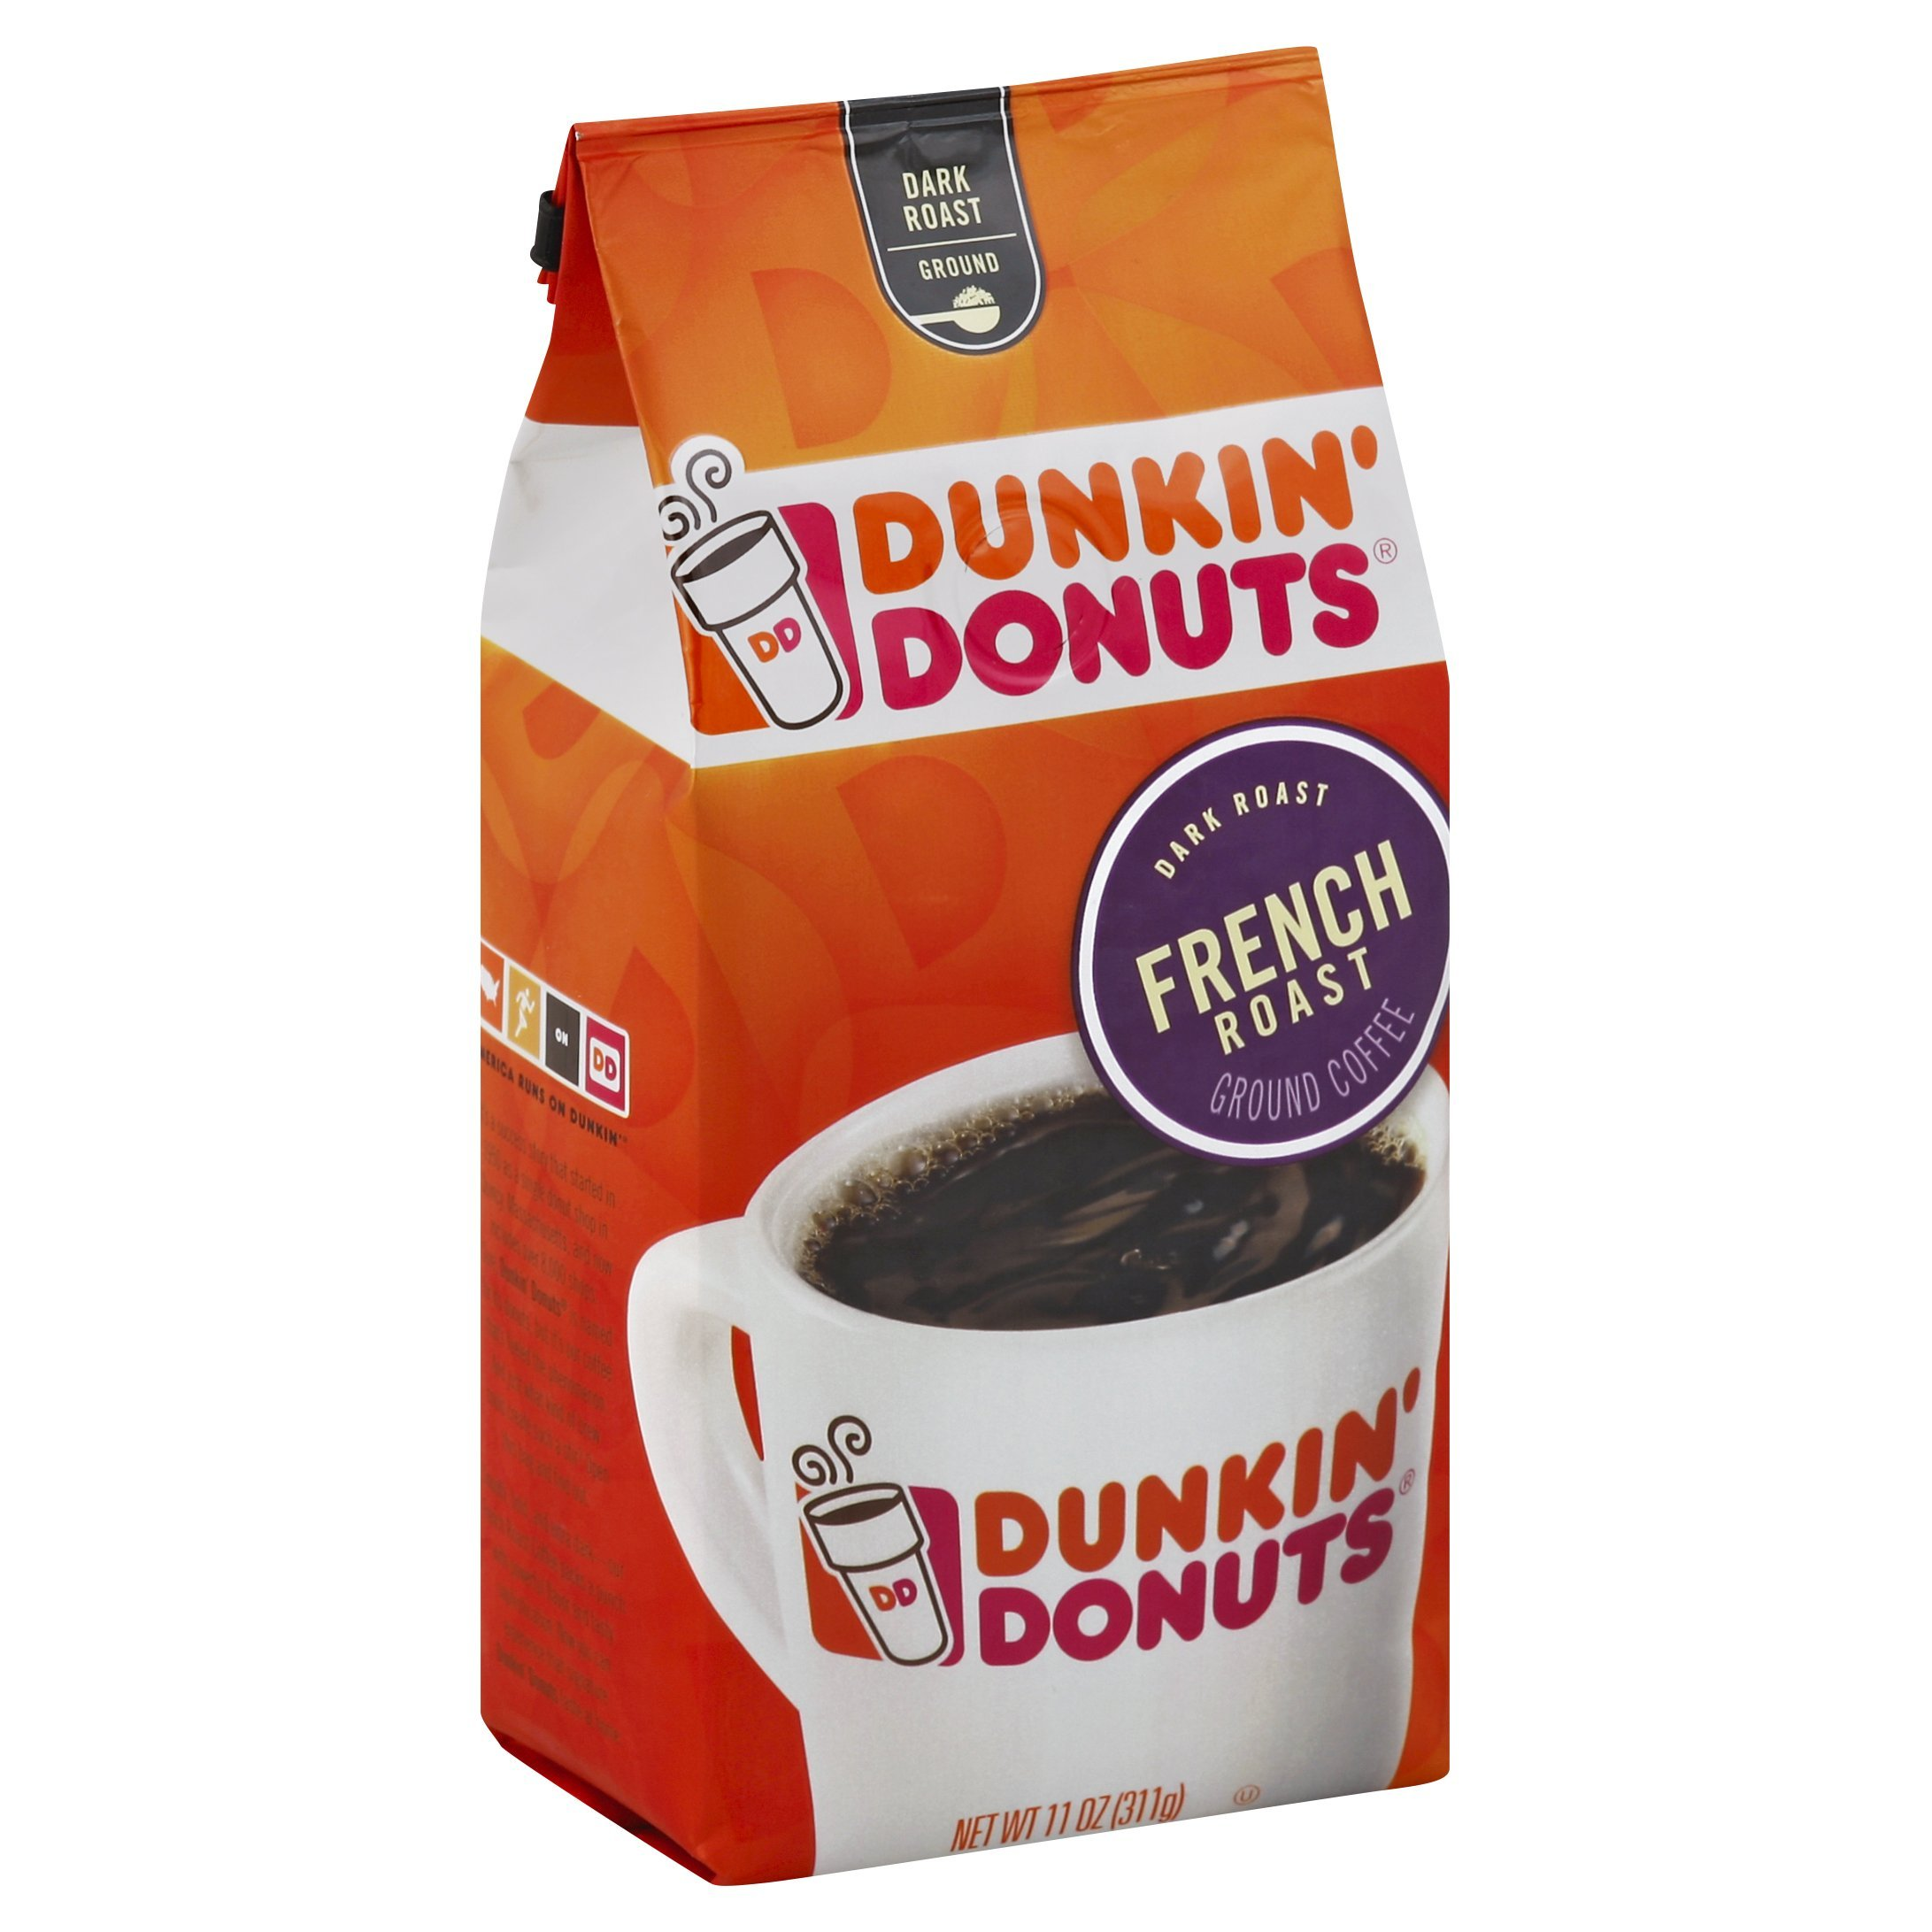 Dunkin' Donuts French Roast Ground Coffee, Dark Roast, 11 Ounces, 6 Count